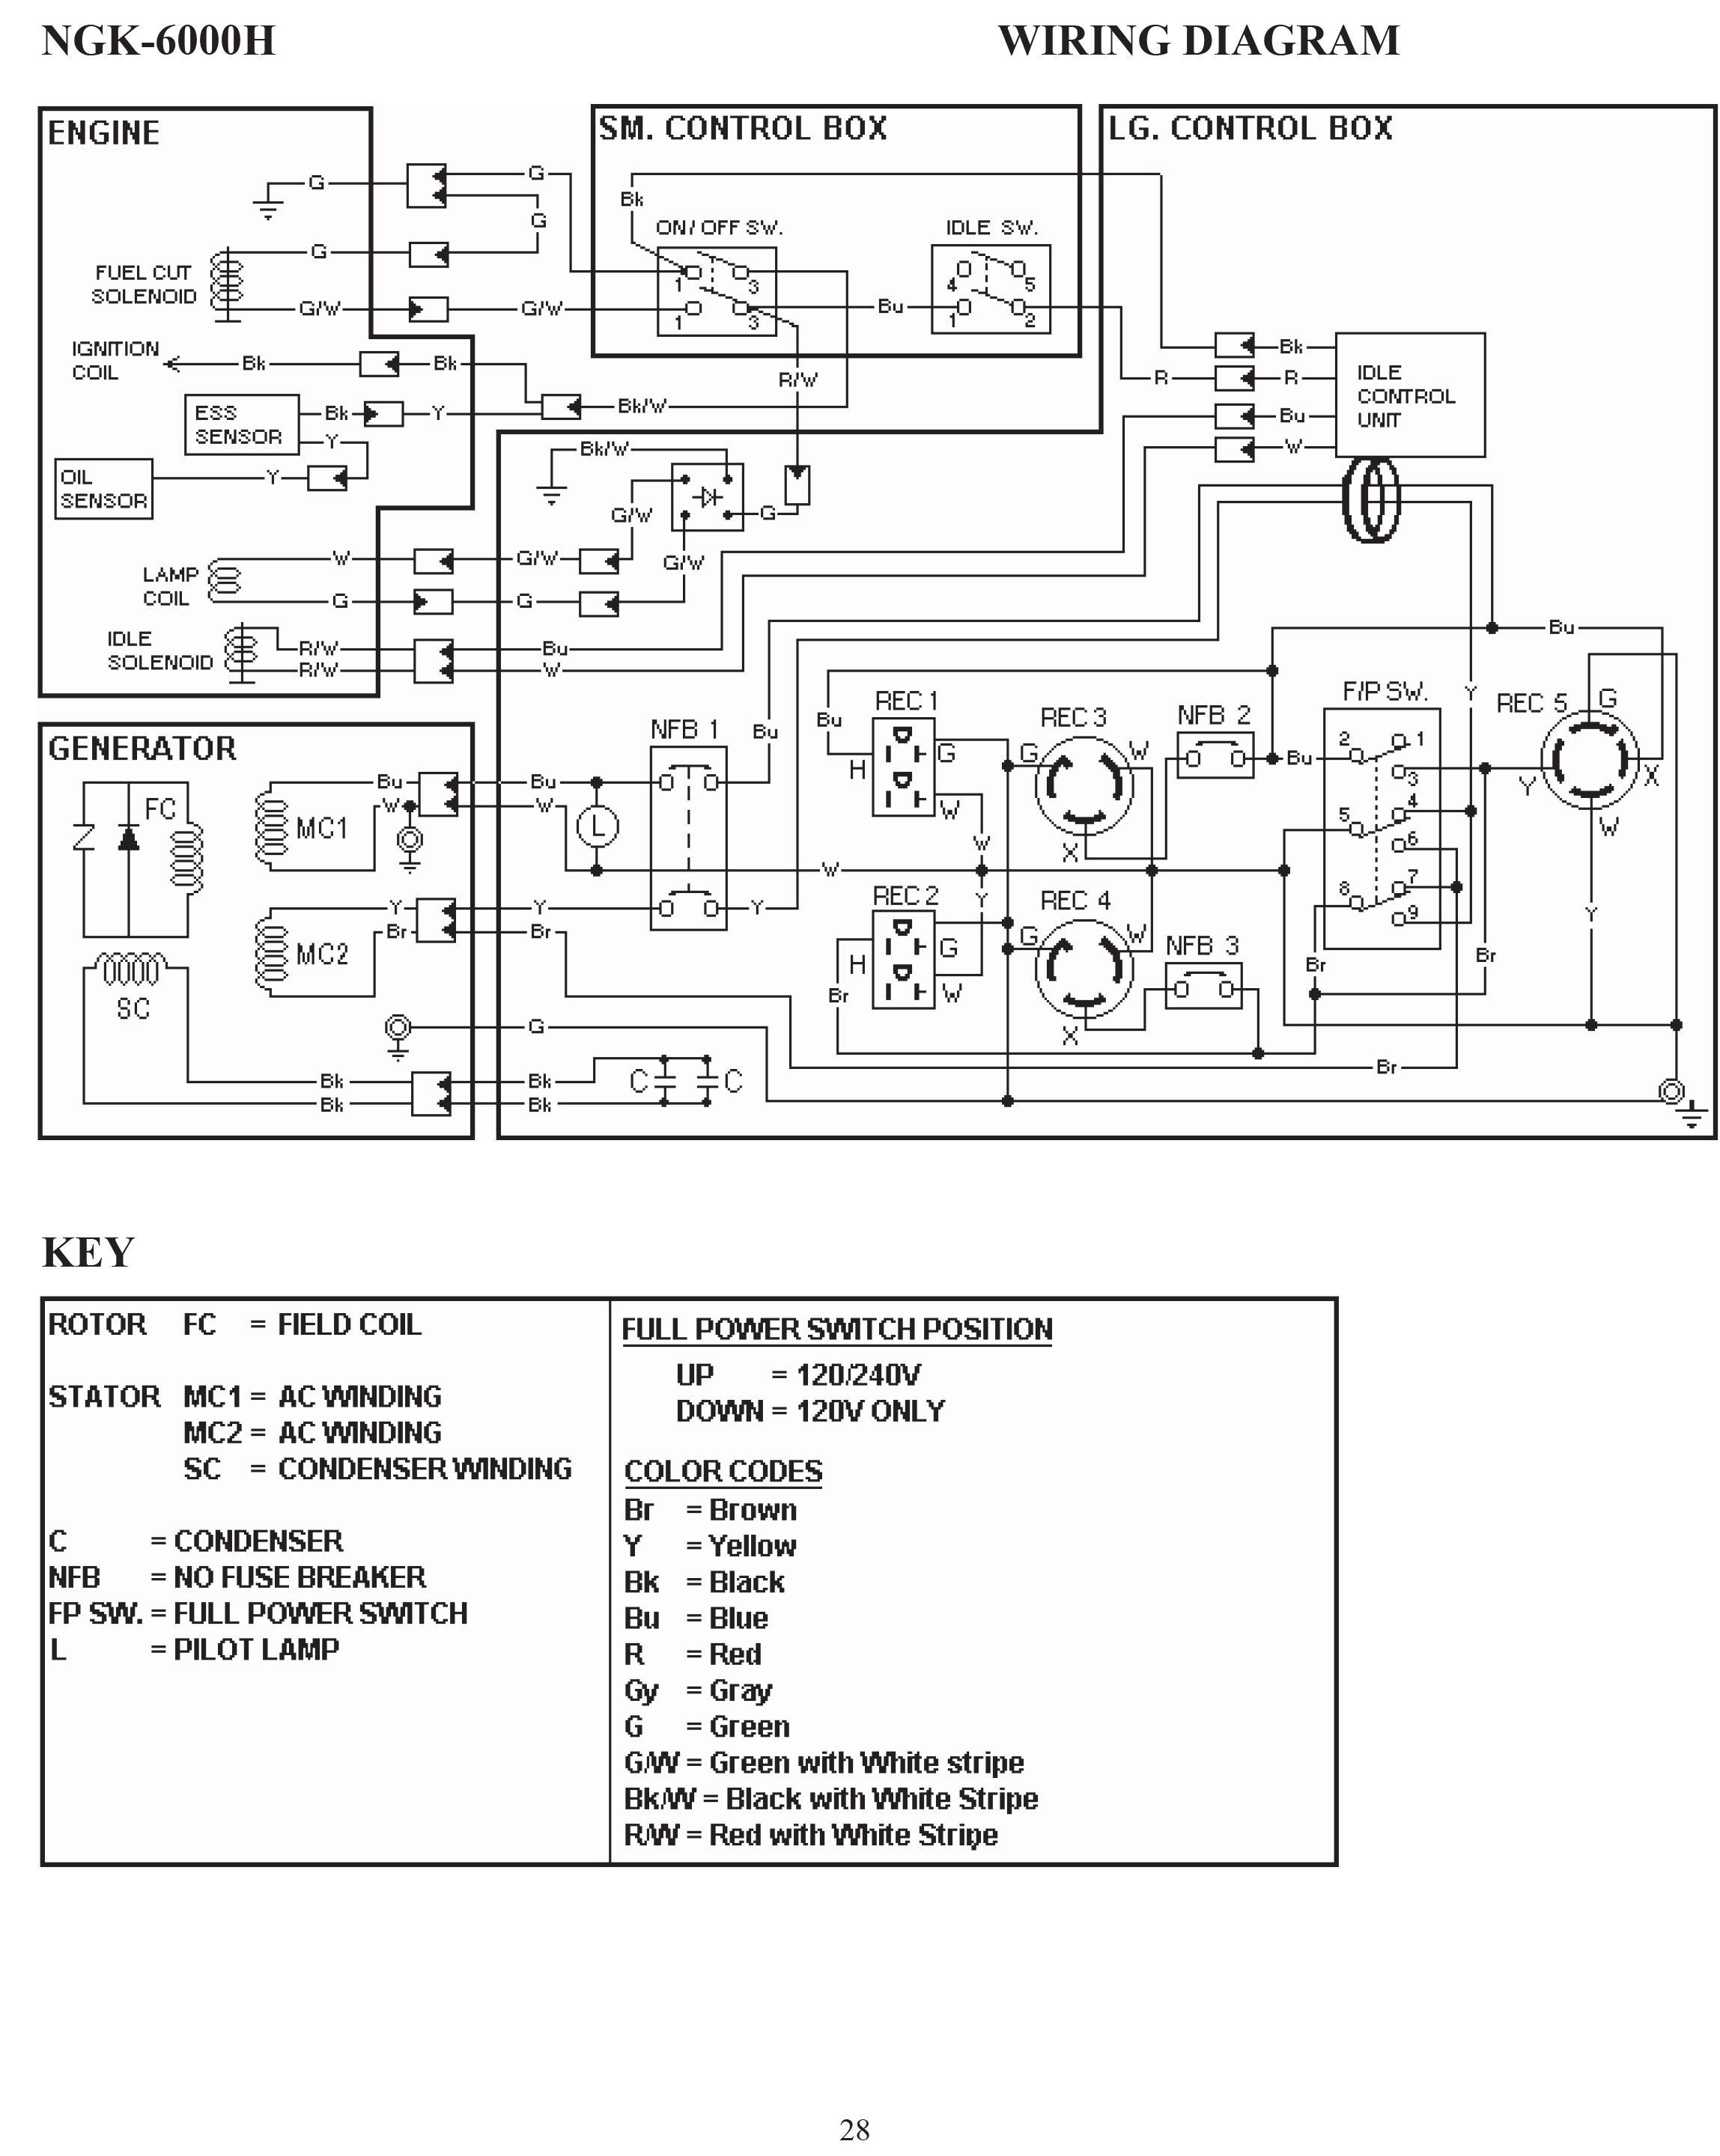 83im9 Hank I Reply Problem Dewalt Dg6000 on dodge motorhome schematics